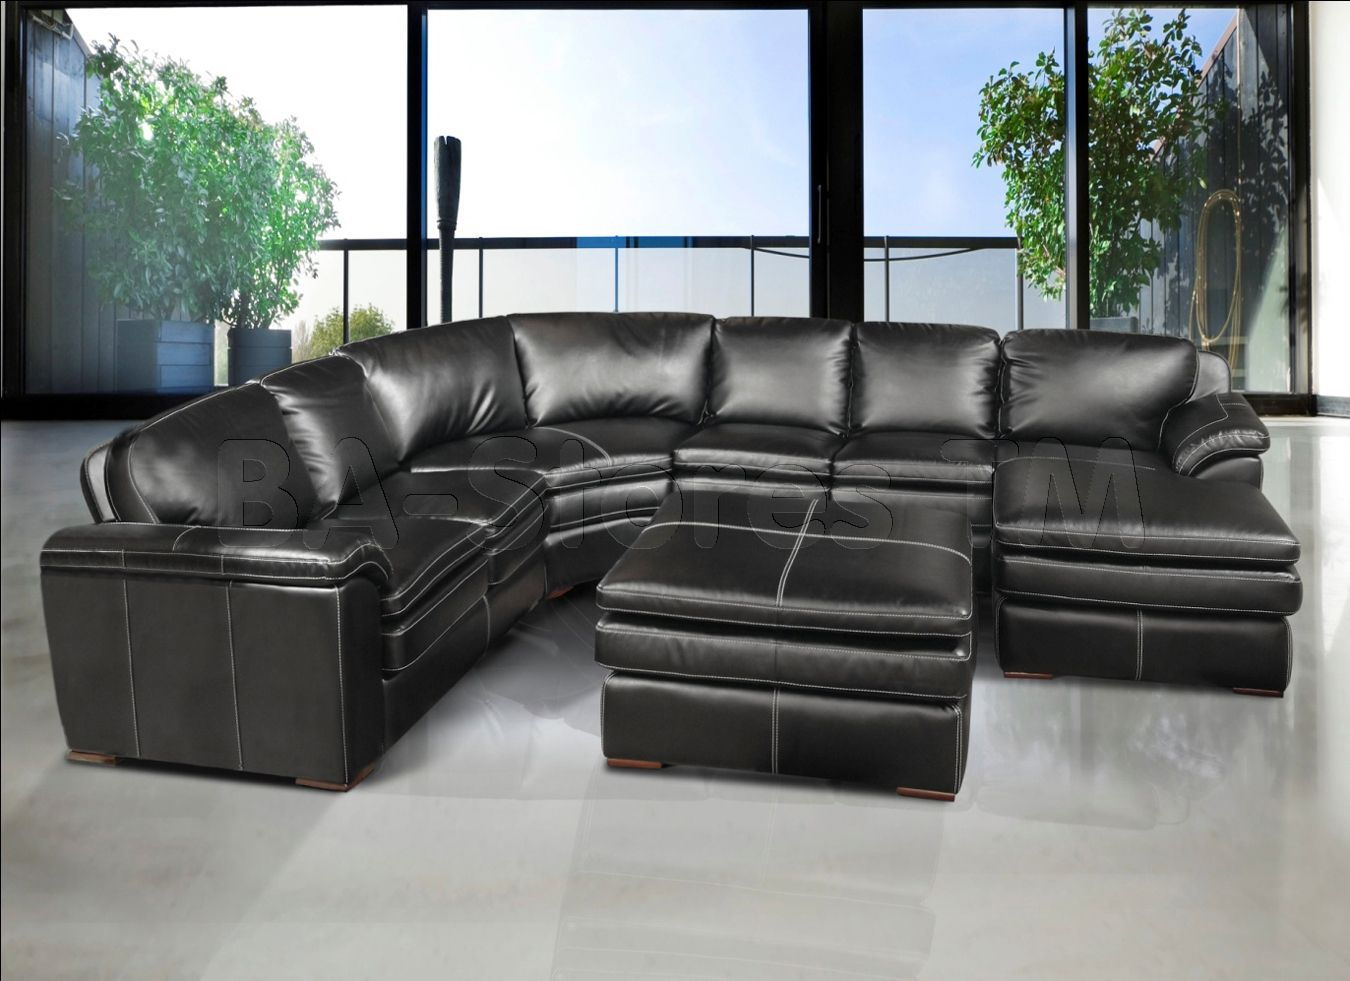 Charcoal Grey Leather Sectional Sofa Sectional Sofa With Chaise